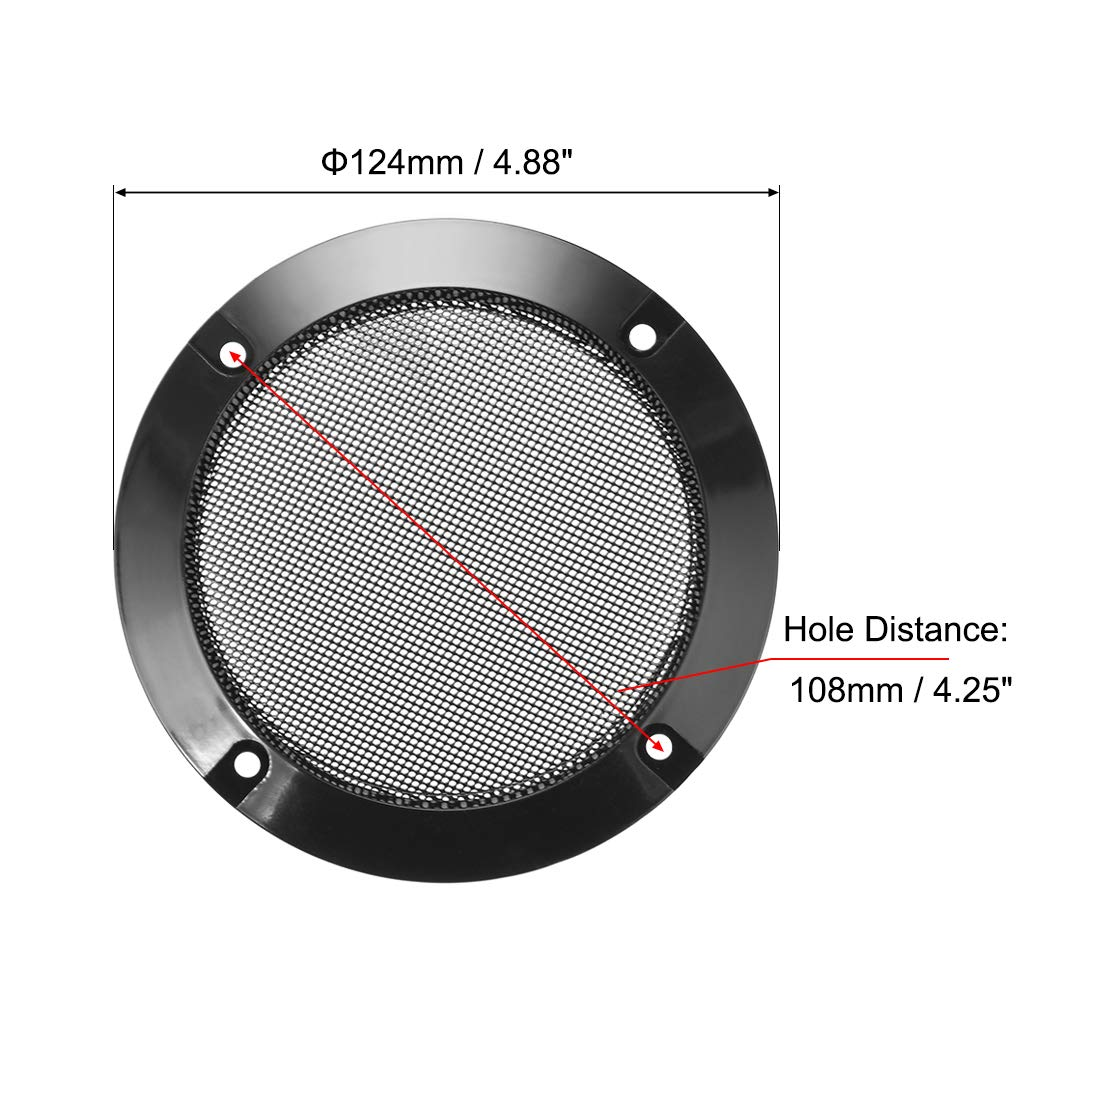 uxcell 2pcs 4 inches Speaker Grill Mesh Decorative Circle Woofer Guard Protector Cover Audio Parts Black